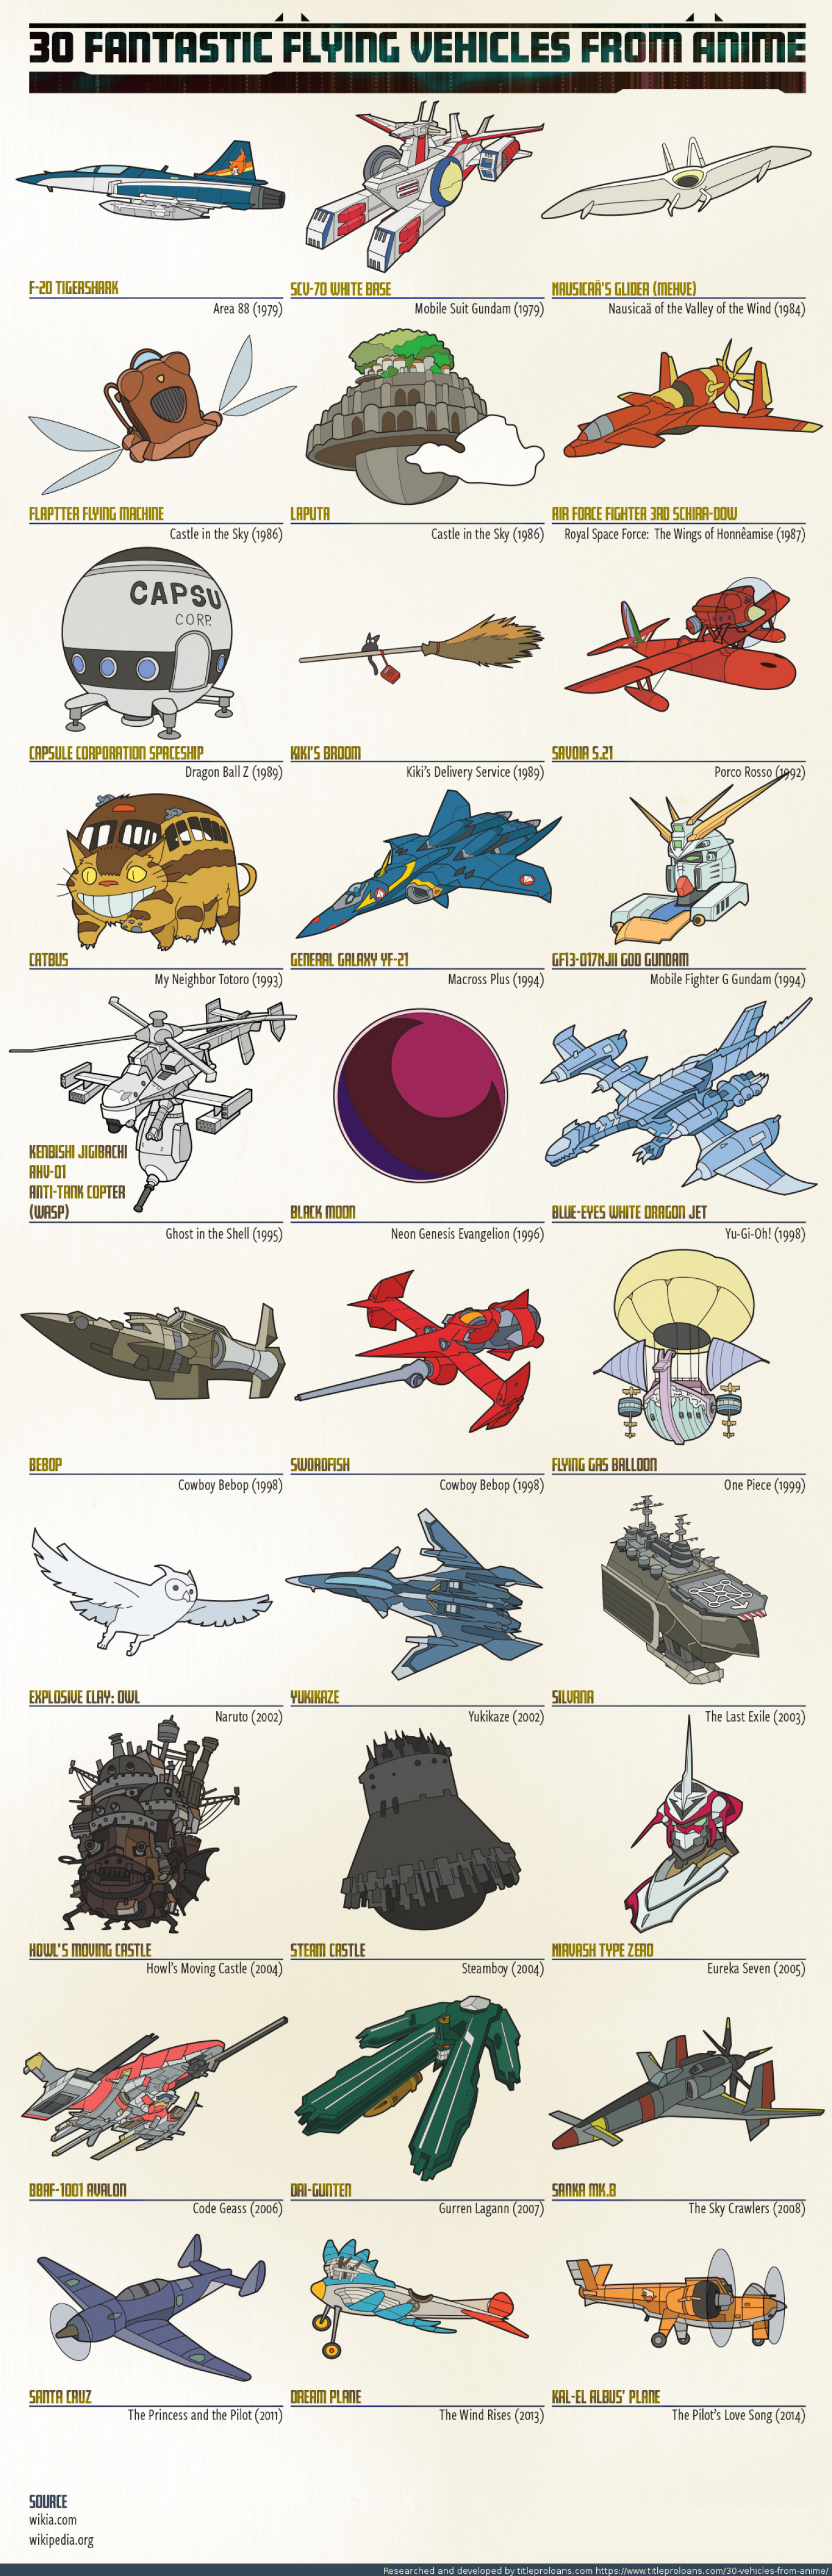 30 Fantastic Flying Vehicles From Anime Infographic